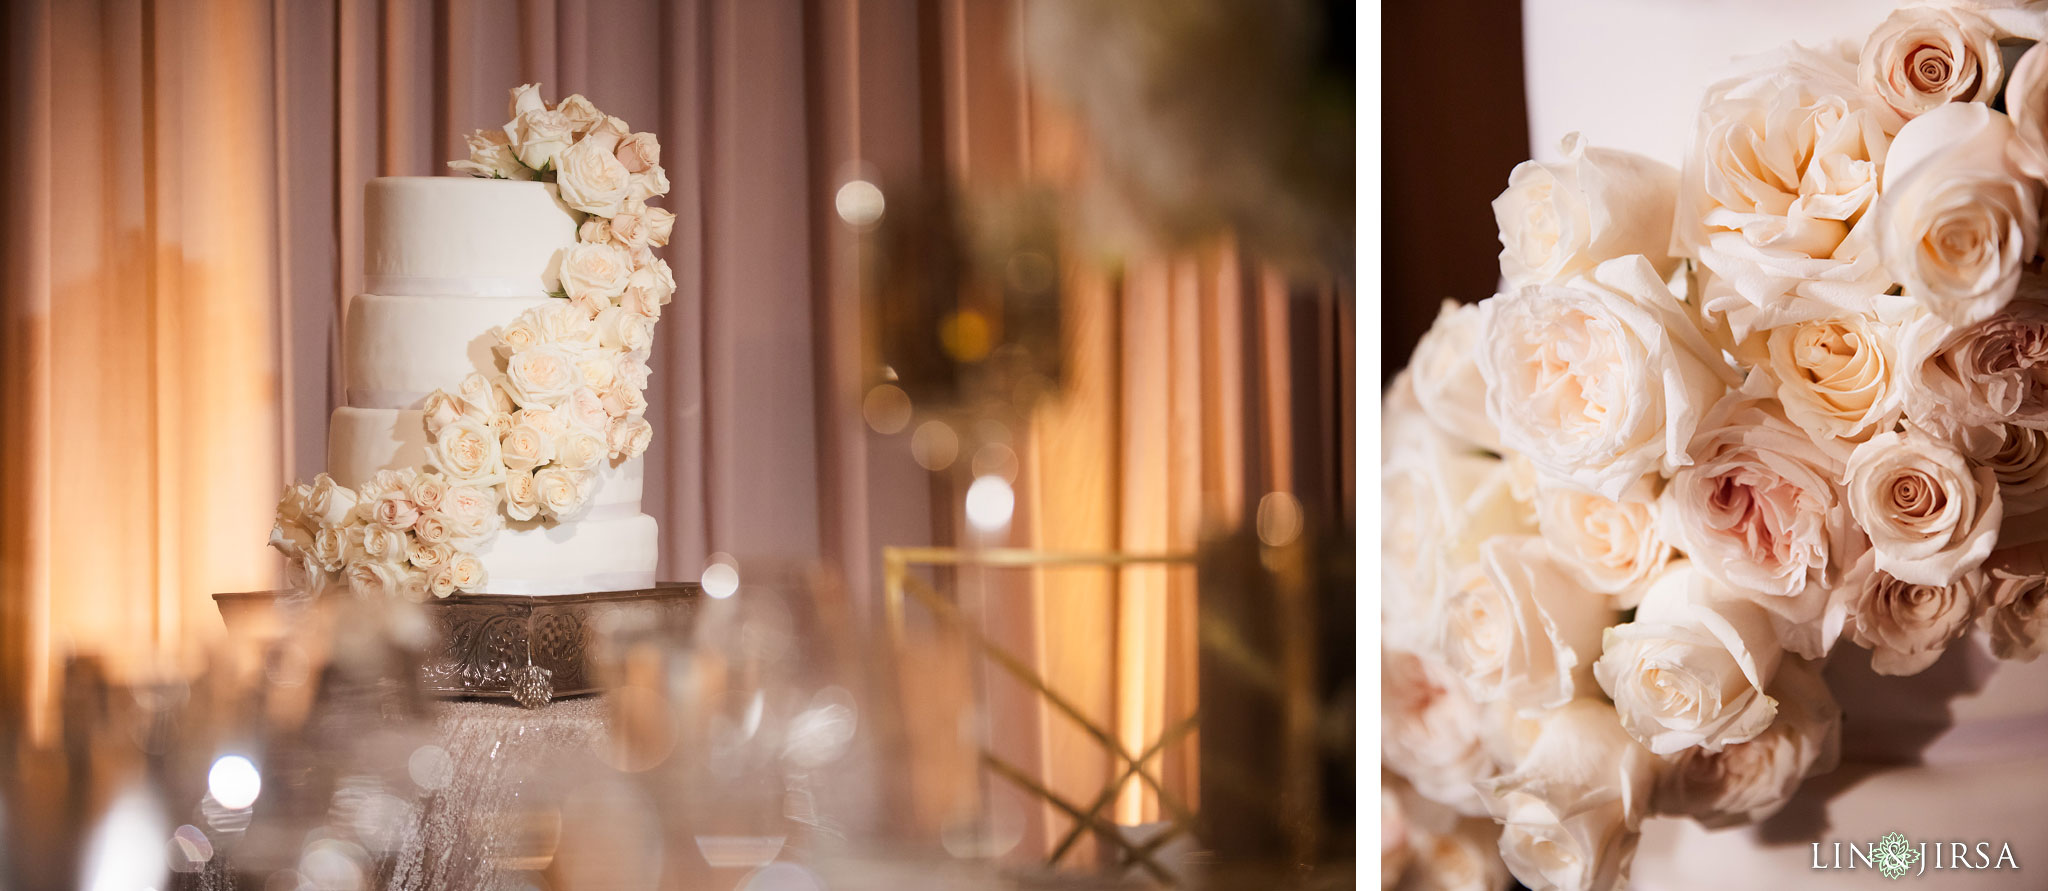 39 montage beverly hills persian wedding photography